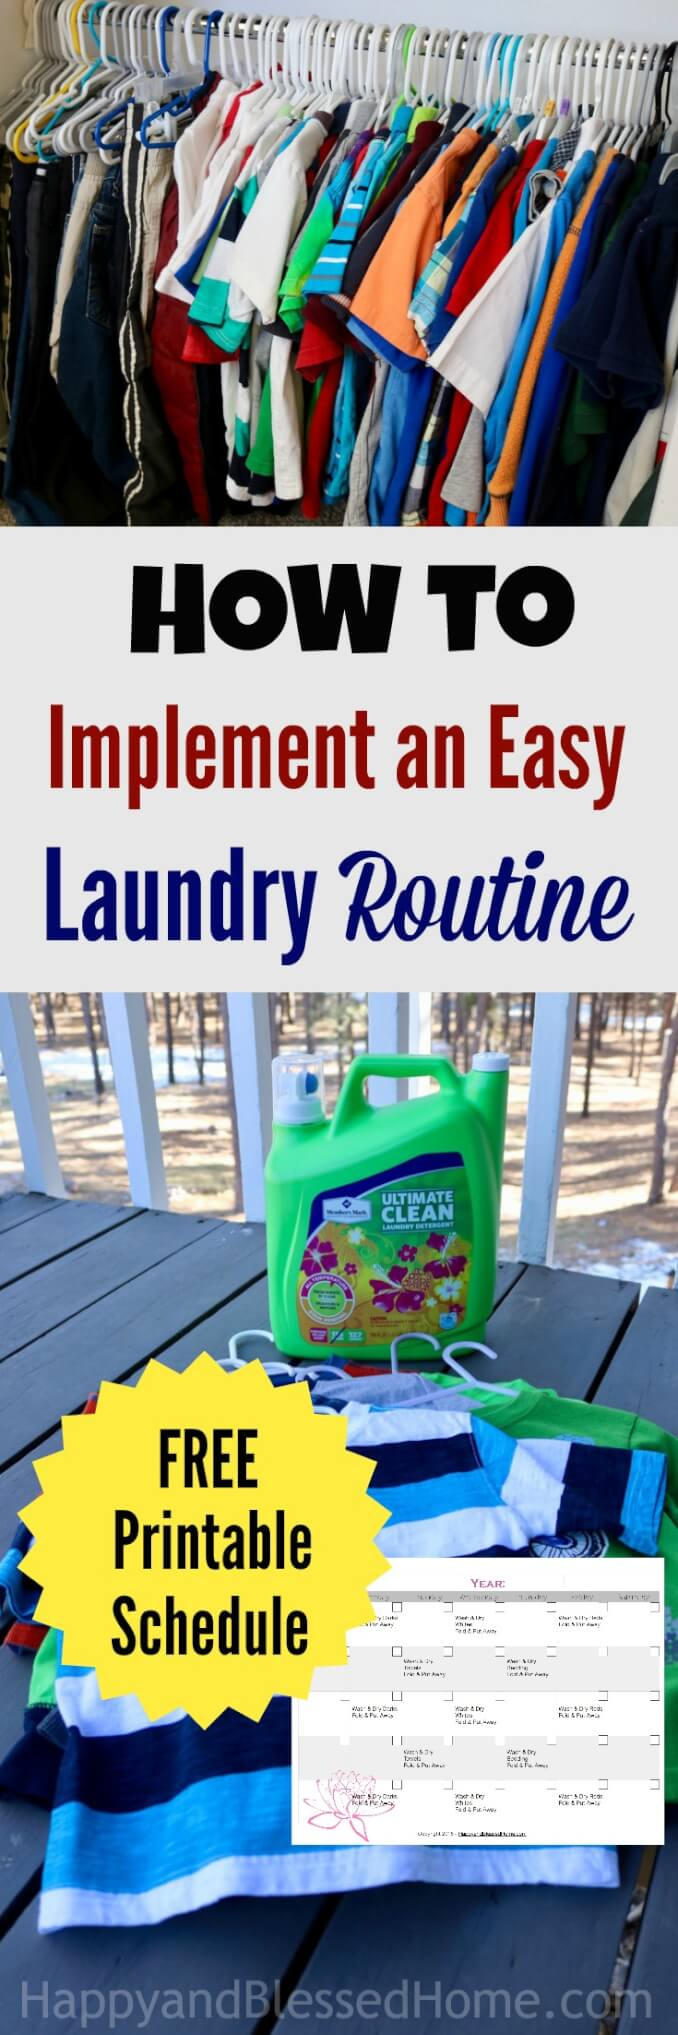 ow to Implement an Easy Laundry Routine